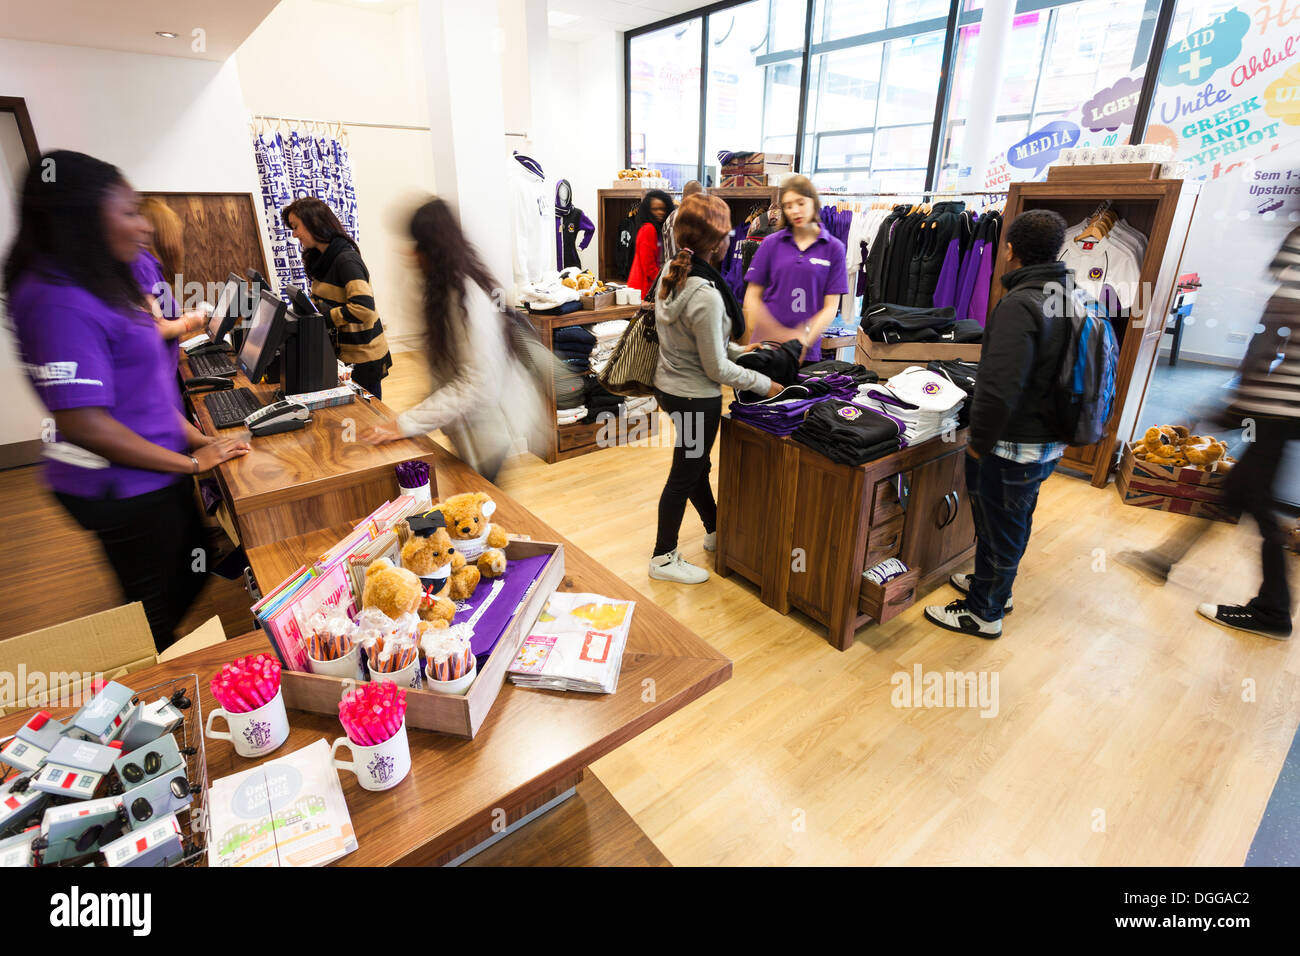 Refurbished student union shop in Portsmouth union building - Stock Image